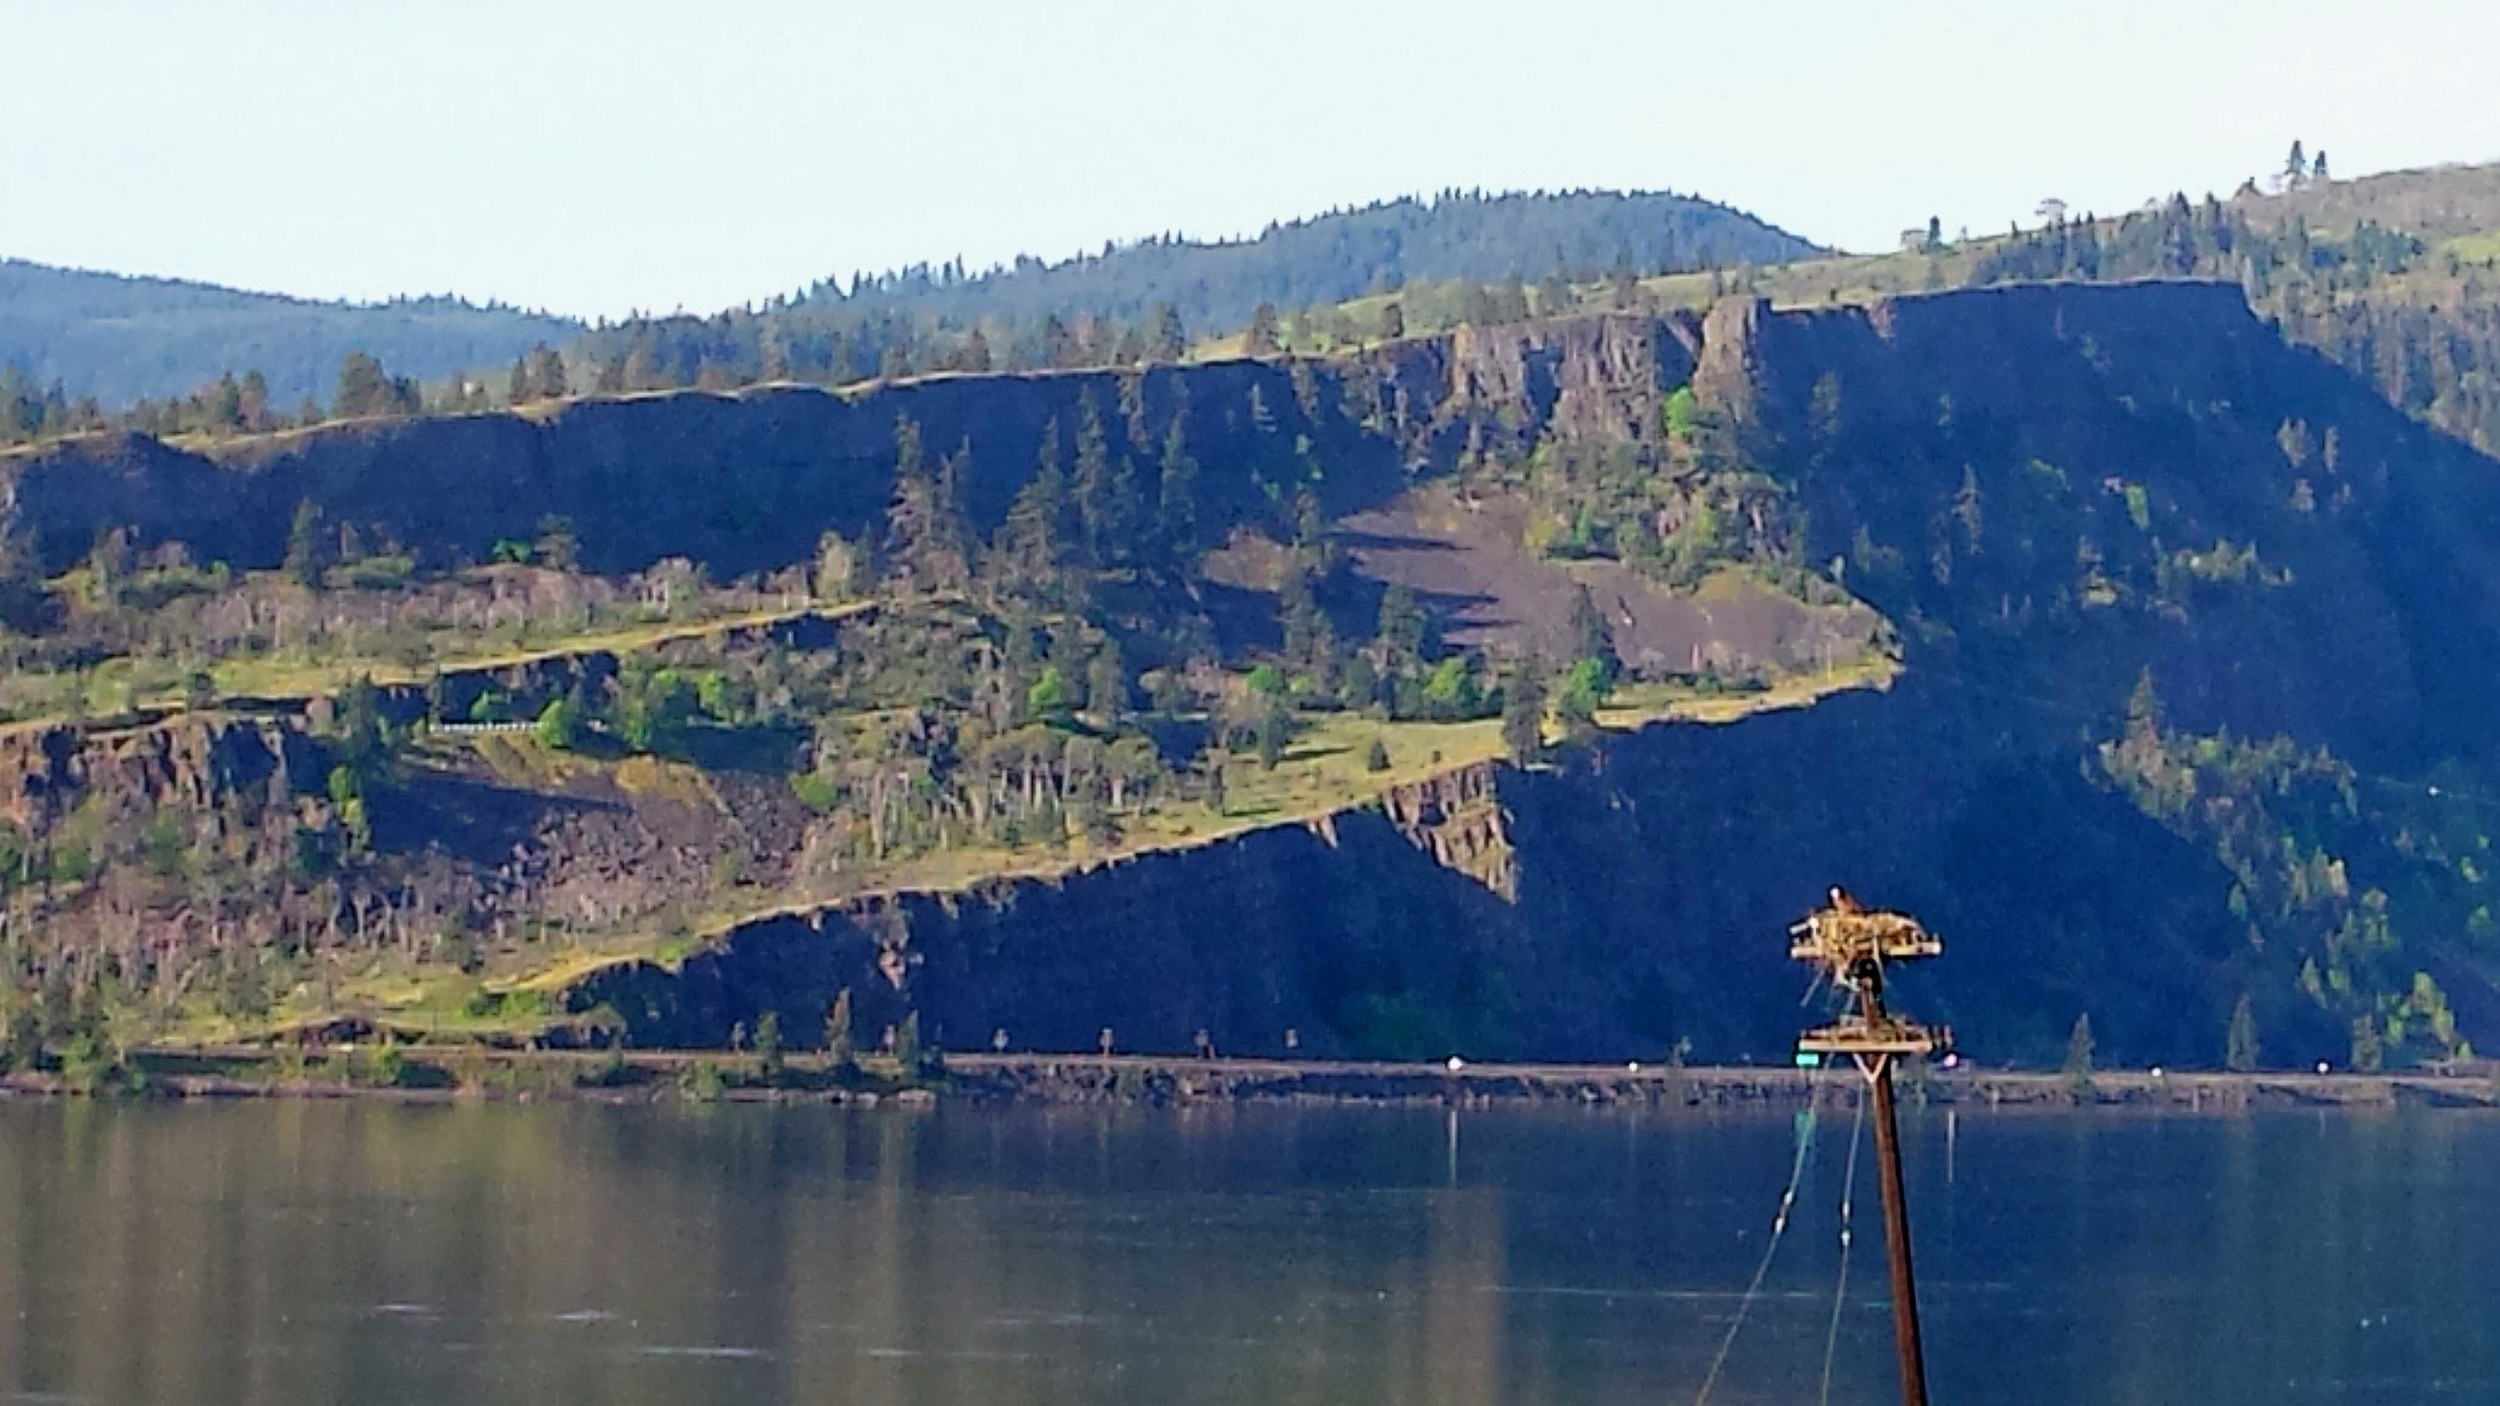 Looking back home toward Mosier - south across the river. Photo: (c) Barb Ayers, DogDiary.org